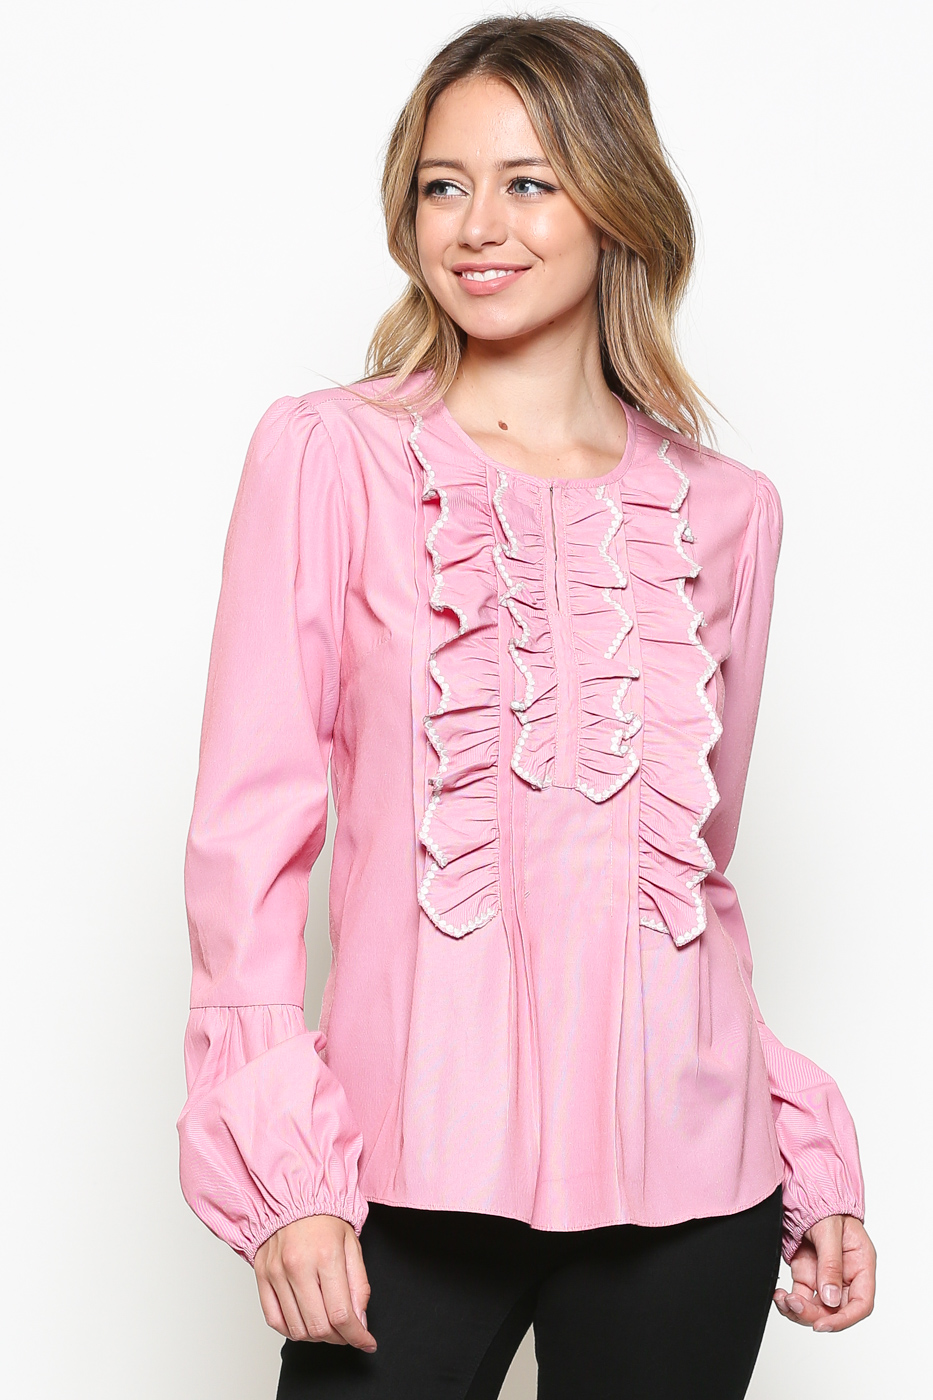 EMBROIDERED RUFFLE BLOUSE WITH BLOUSAN SLEEVE